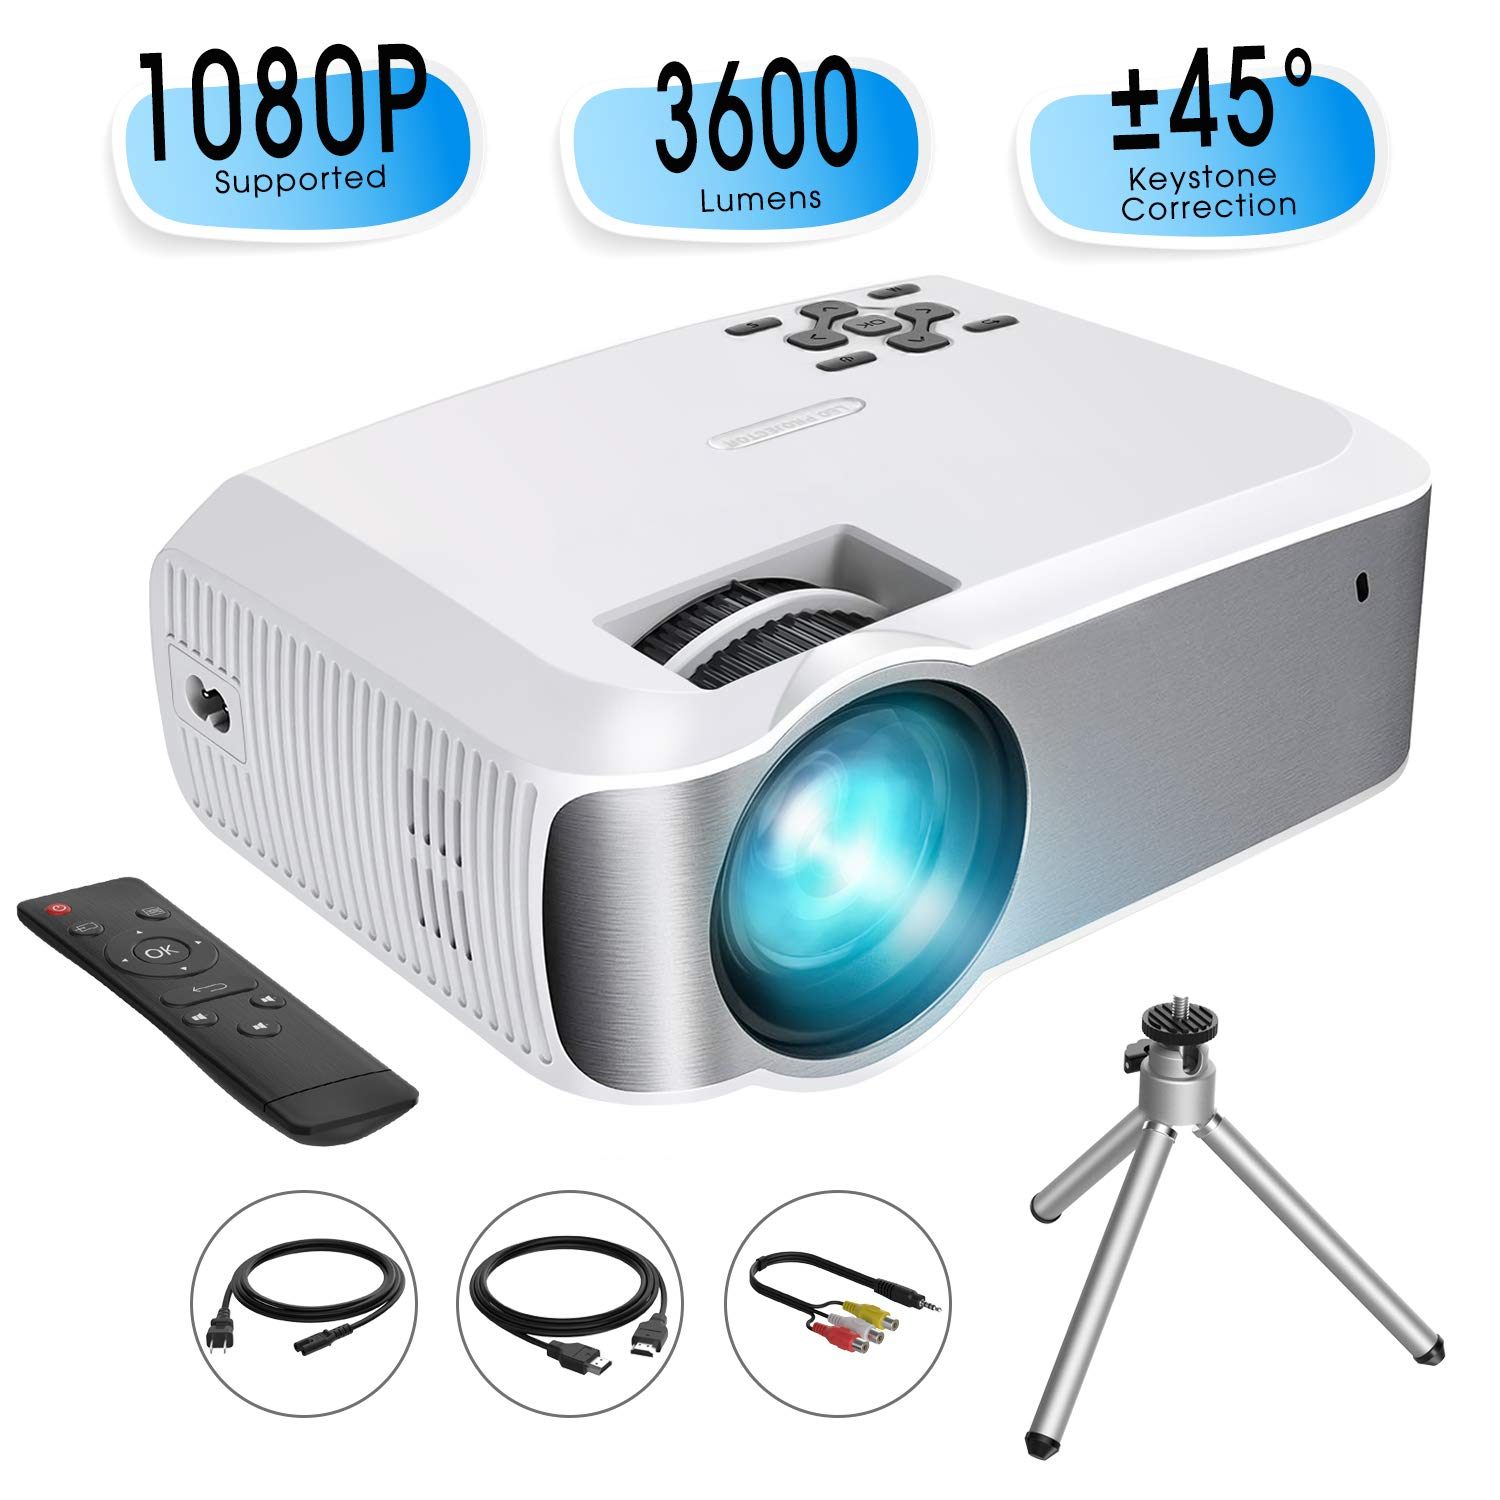 Mini Projector, TOPELEK Video Projector (2019 Upgraded) 1080P Supported with 3600 Lumens & ±45° Vertical Keystone Correction; LED Portable Projector with 2000:1 Contrast Ratio, 200'' Display (w/Tripod)